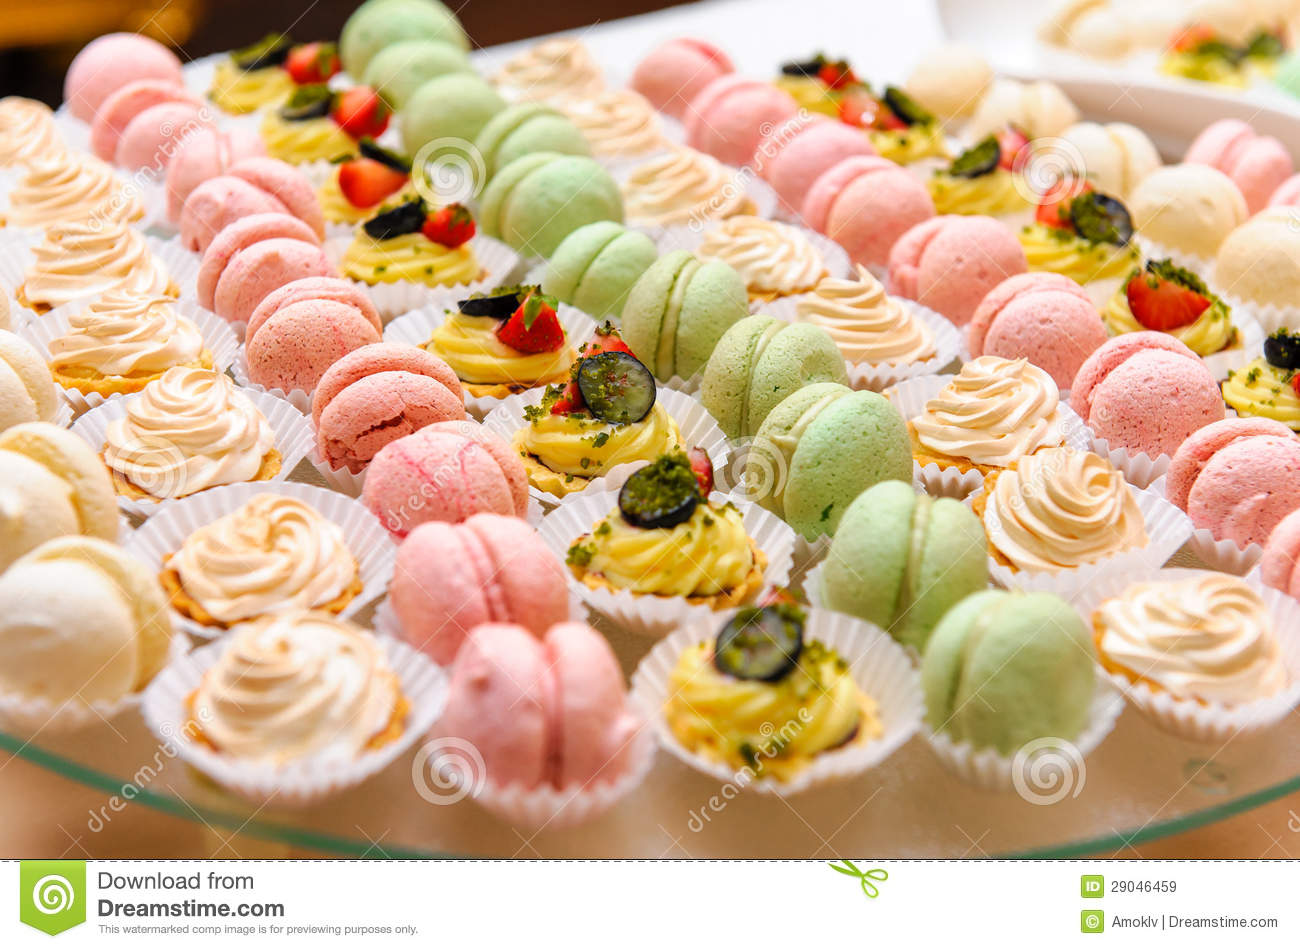 60 Table Seats How Many Cakes And Macaroon Stock Image Image Of Delicious